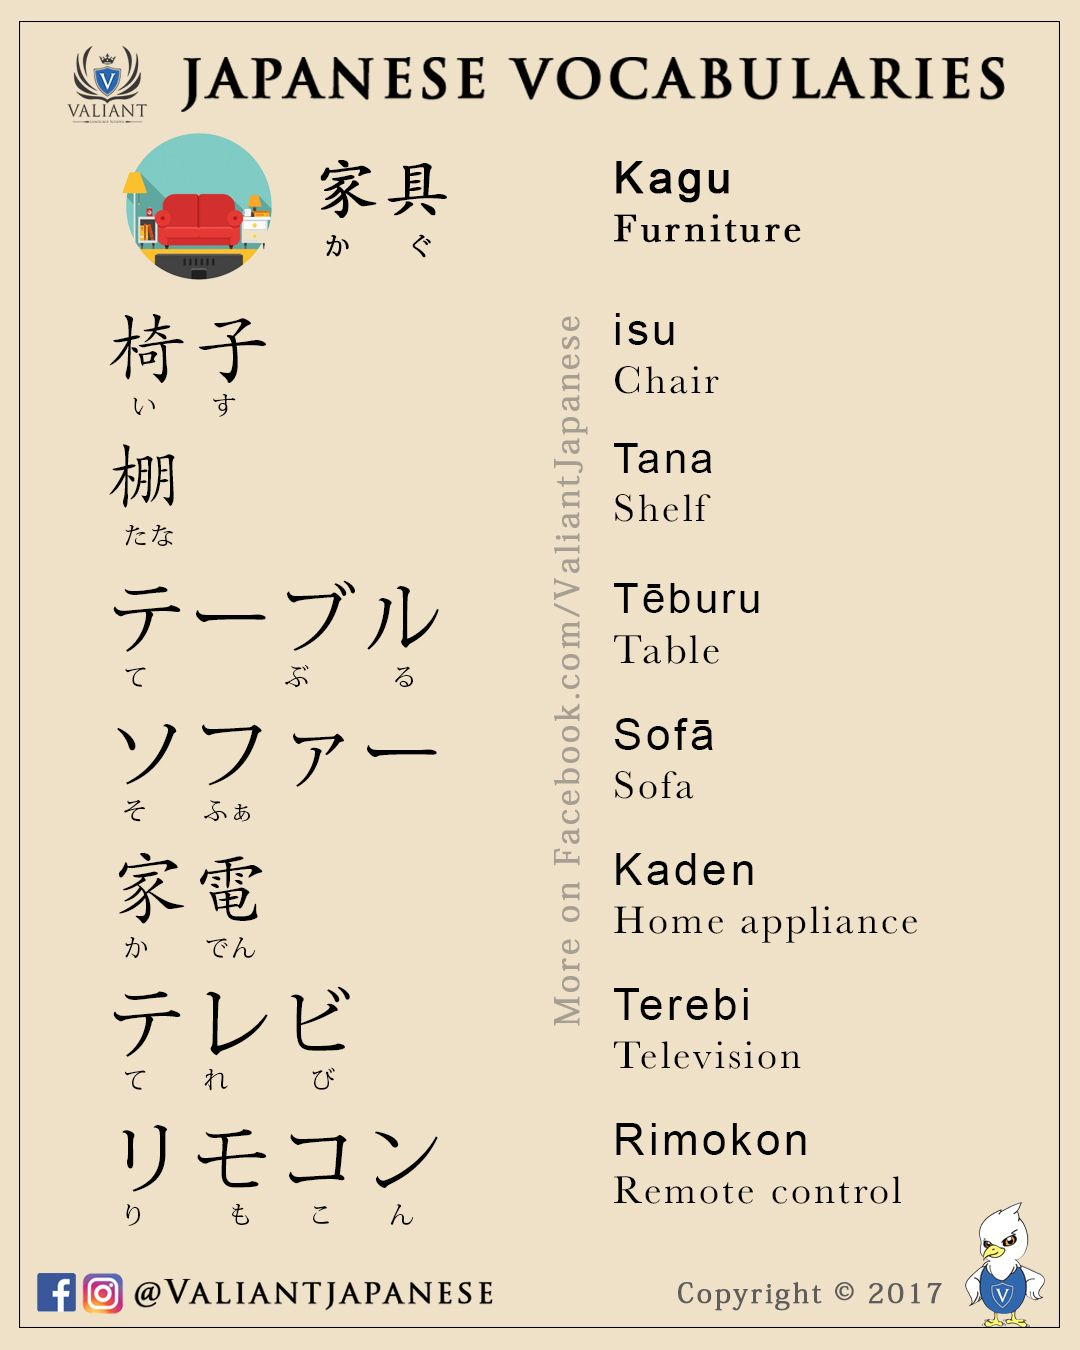 japanese vocabularies Amazoncom: japanese vocabulary book 8 thrilling and captivating japanese stories to expand your vocabulary and learn japanese while having fun japanese edition feb 15, 2017 by world language institute spain and japanese kindle edition $599 $ 5 99.